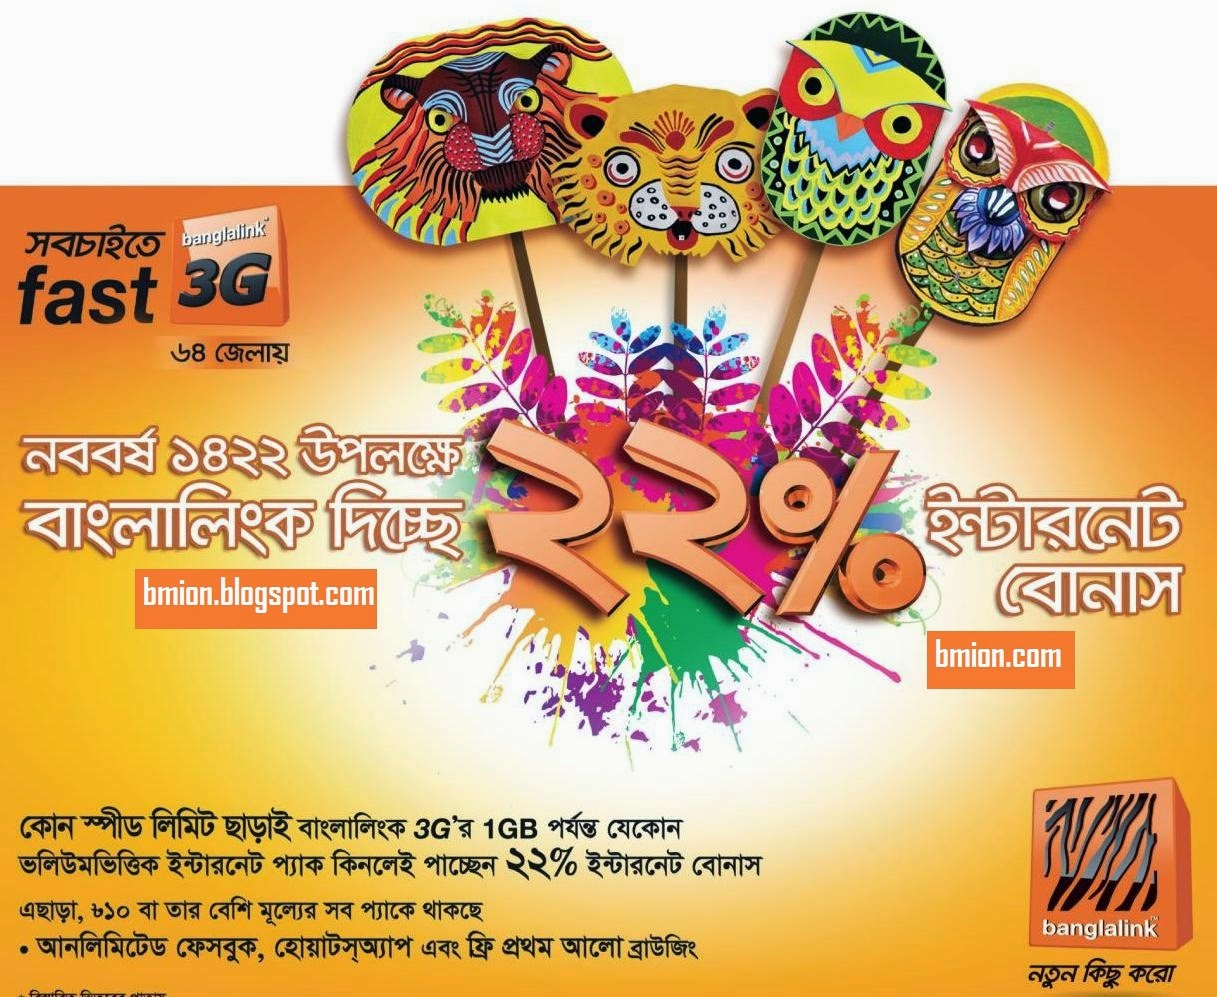 Banglalink-Get-22percent-Instant-Bonus-on-Internet-Pack-at-Pohela-boishakh-1422